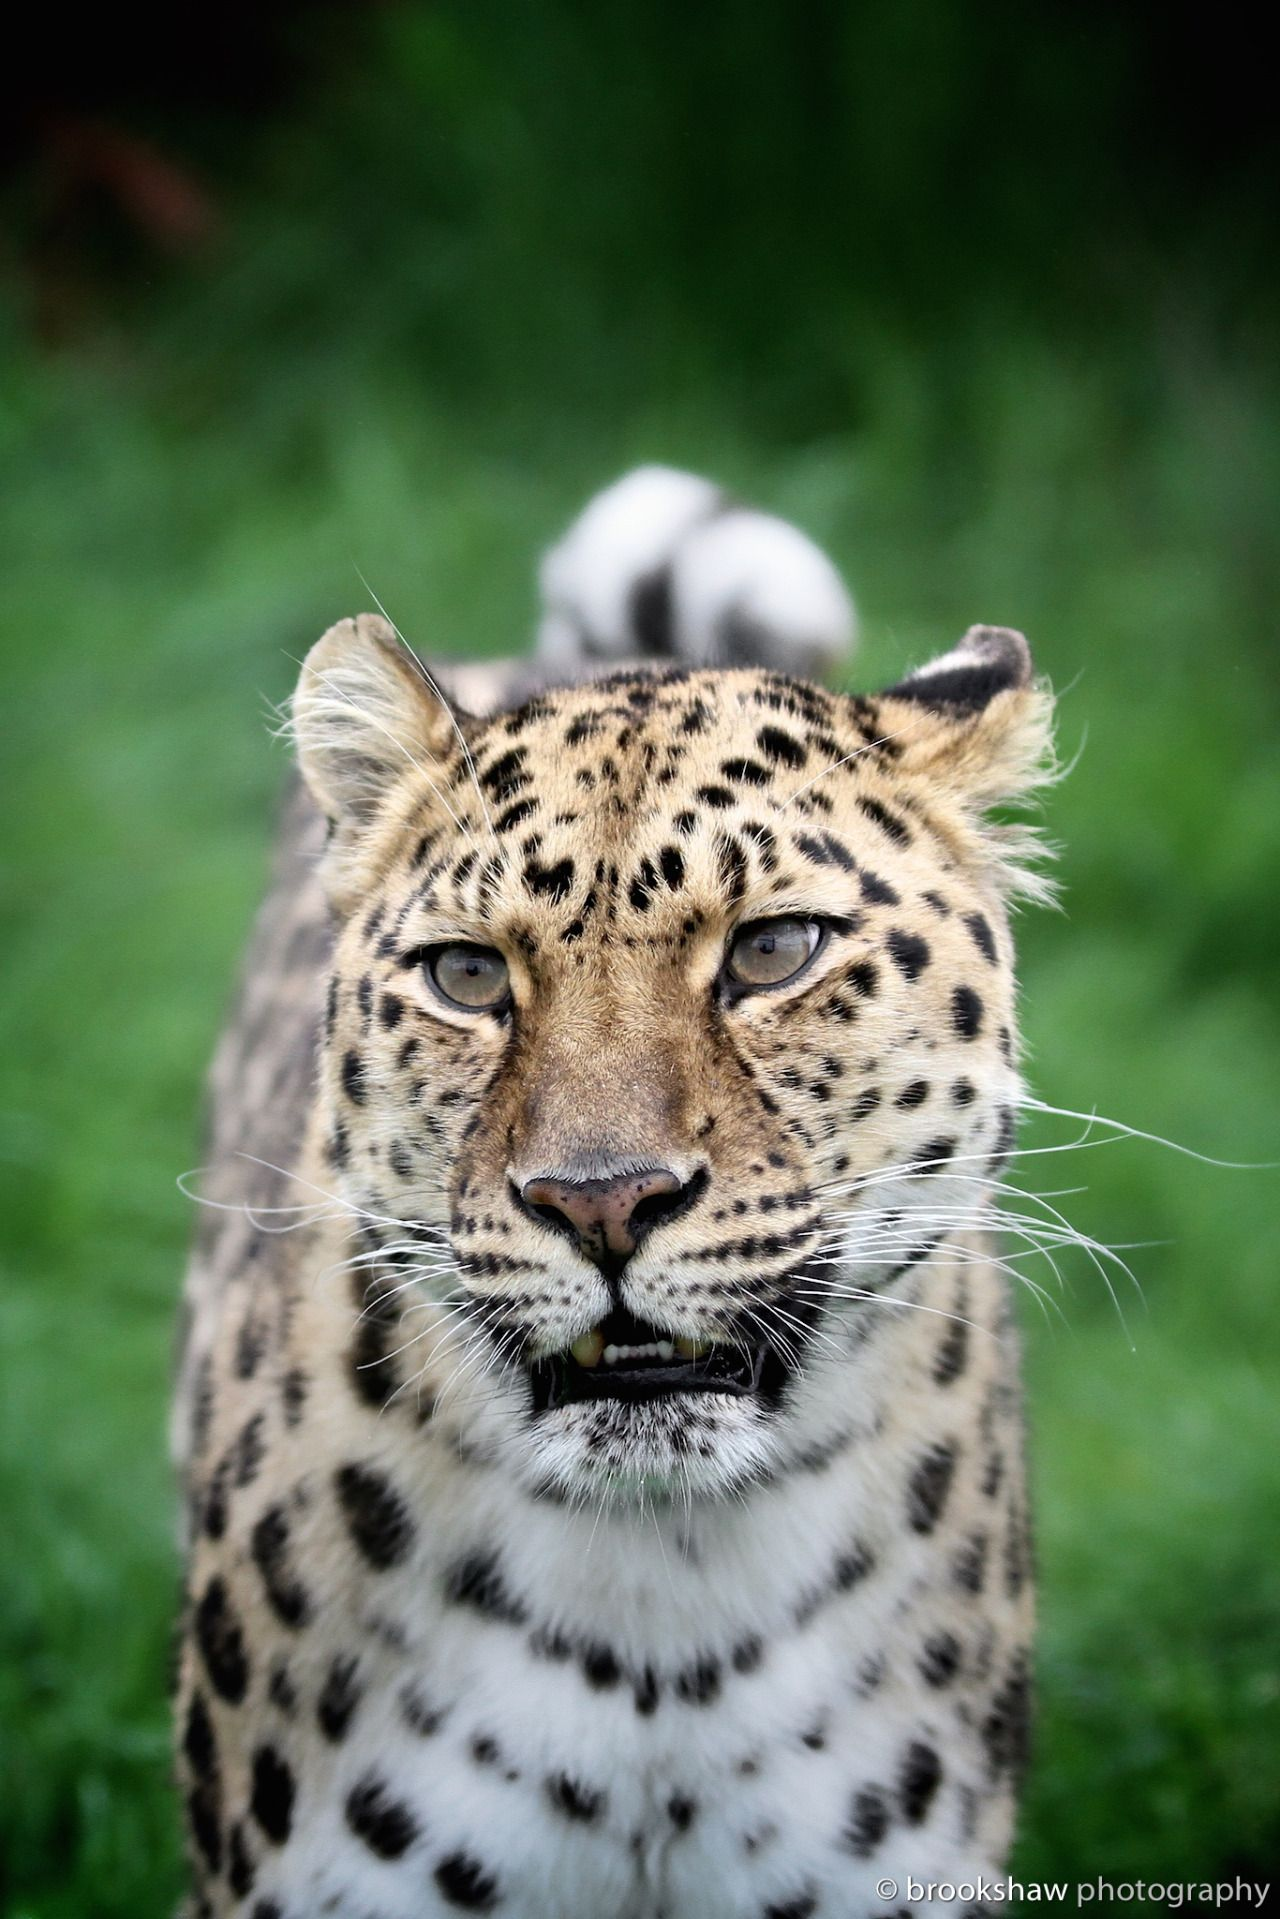 This Is Xizi A Female Amur Leopard At Whf Big Cat Sanctuary Amur Leopards Are Probably The Rarest And Most Endang Animals Beautiful Small Wild Cats Wild Cats